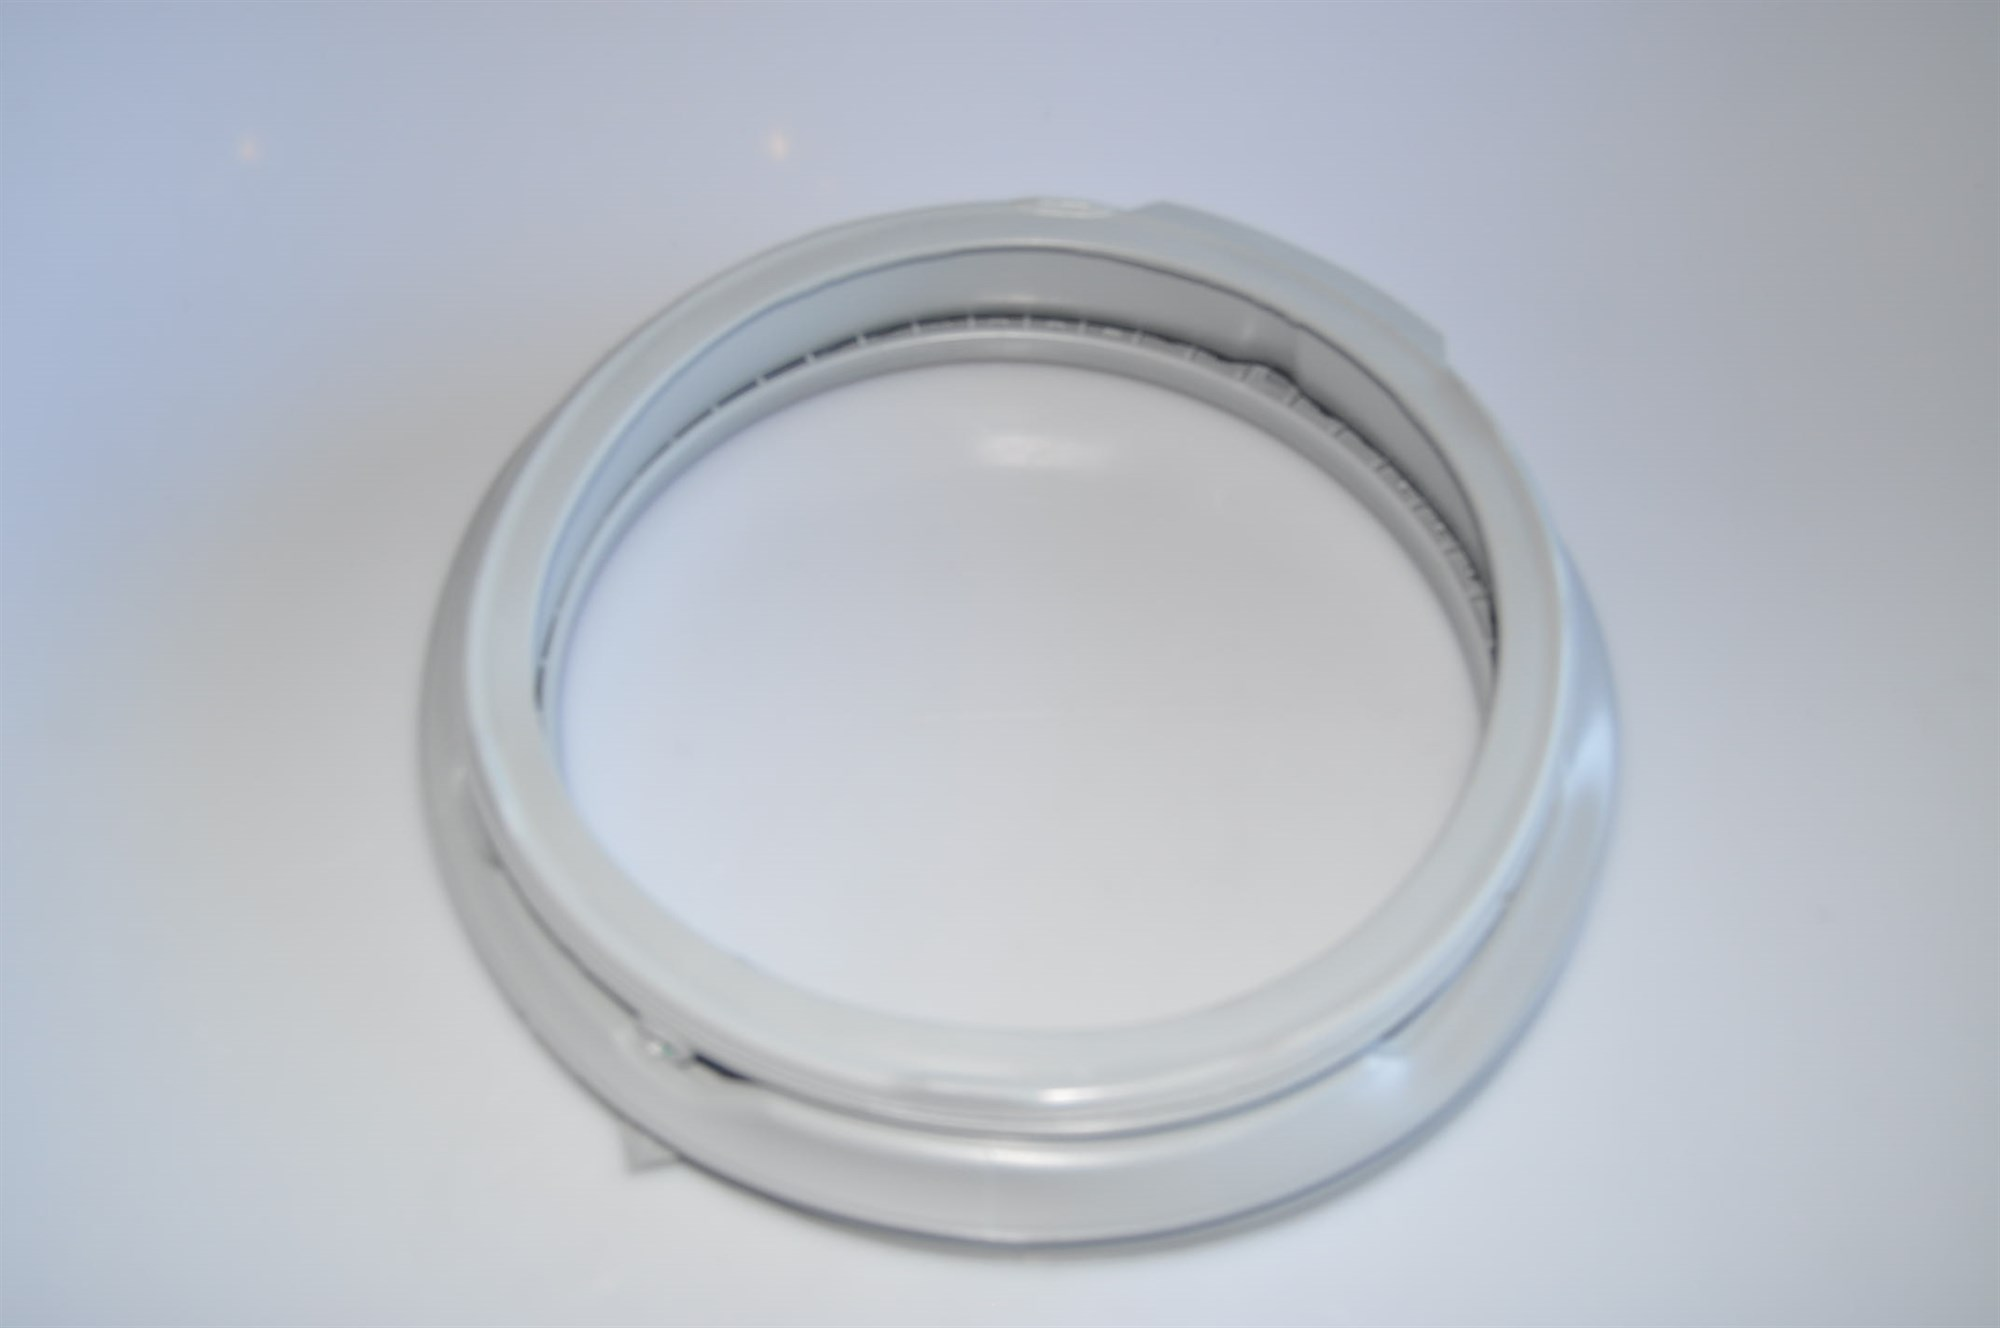 how to clean the rubber seal of a washing machine